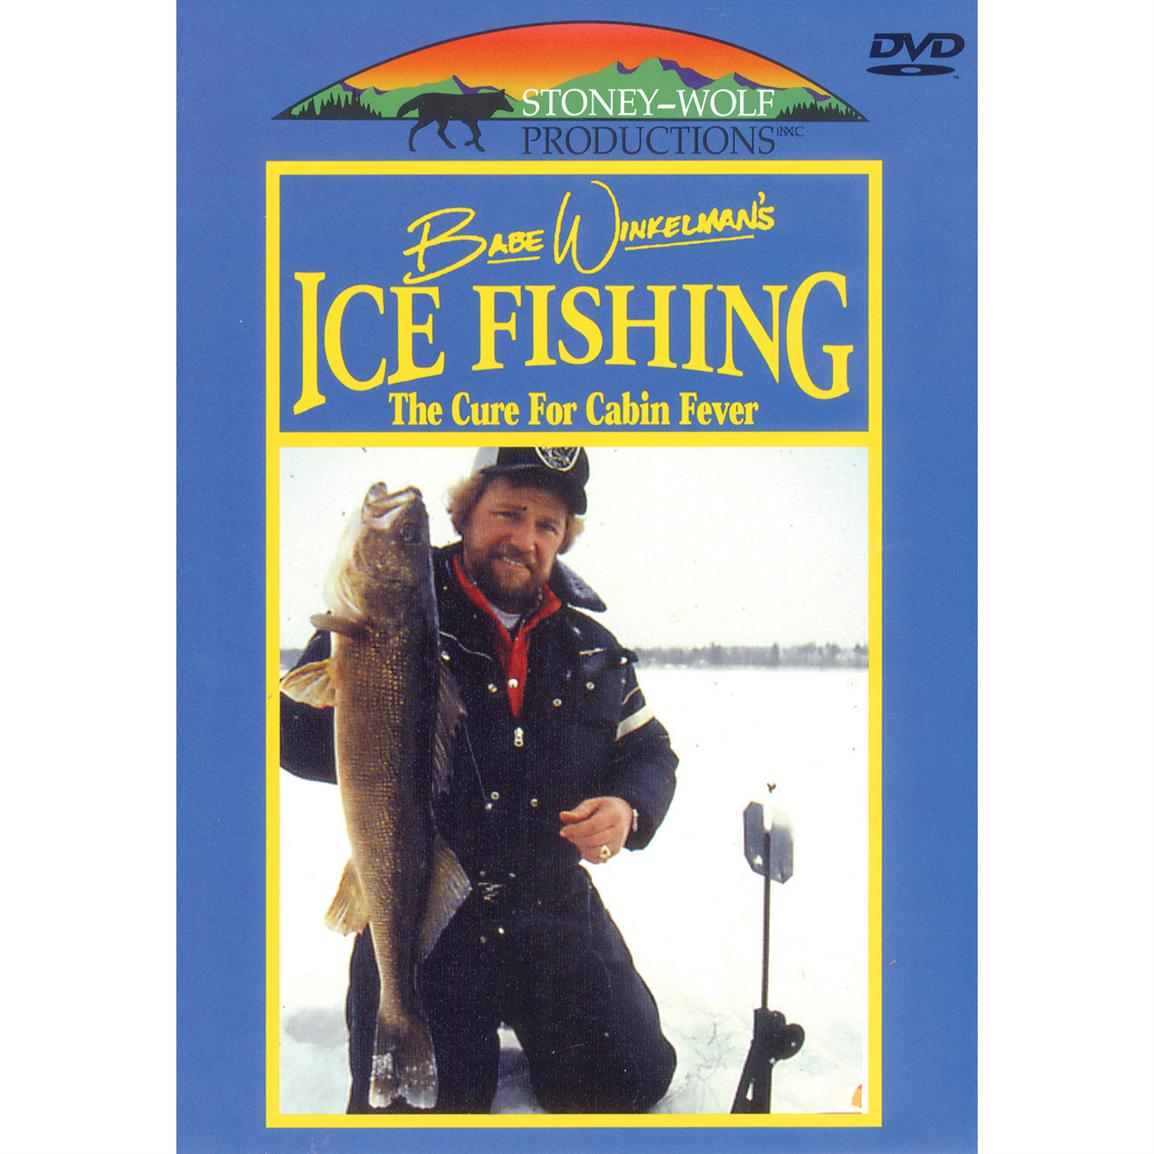 Ice Fishing - The Cure for Cabin Fever DVD